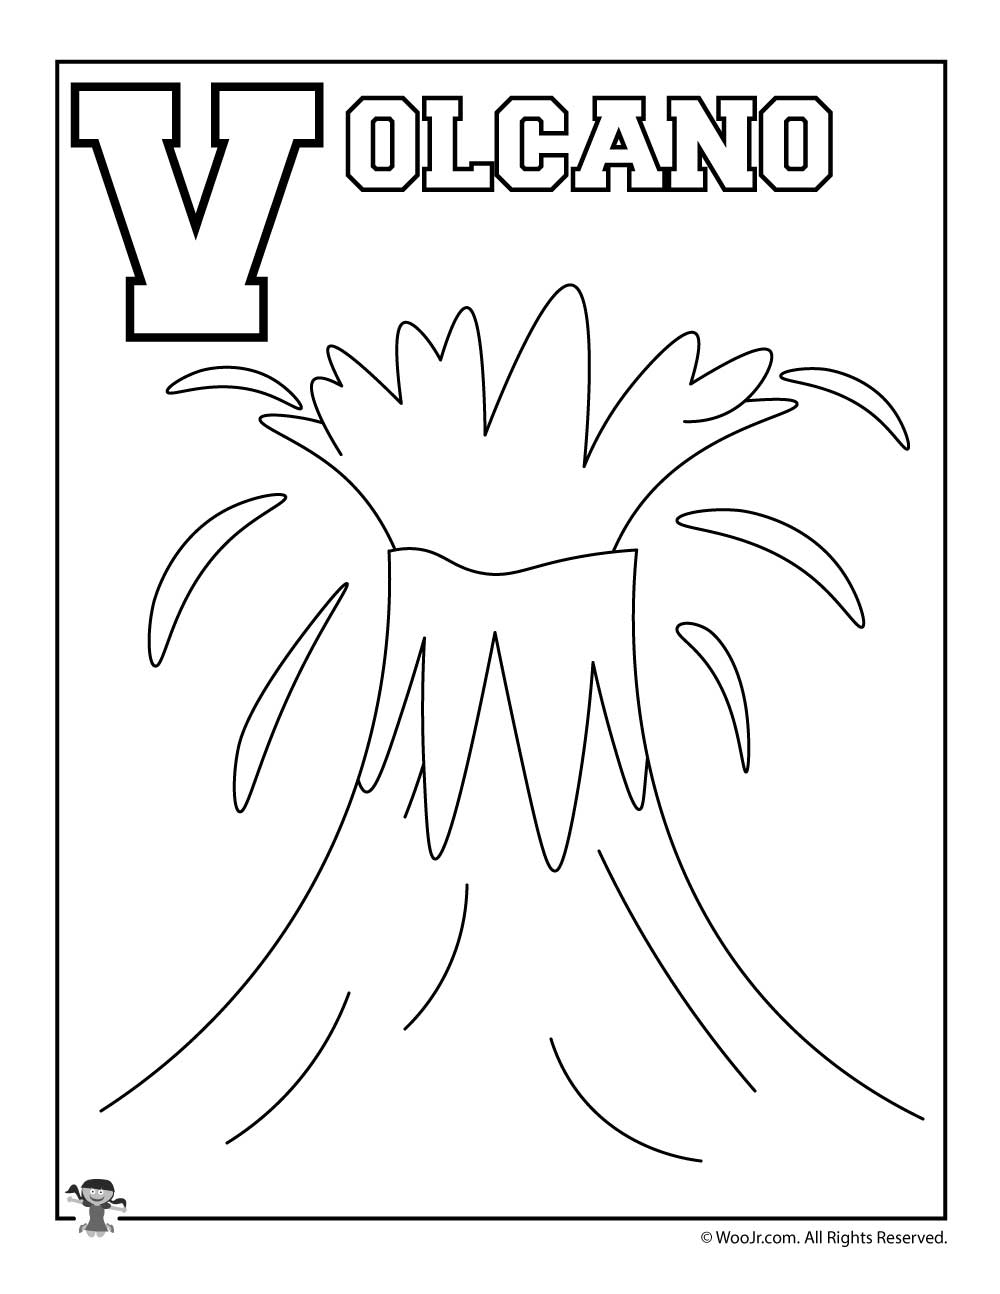 V is for Volcano Woo Jr Kids